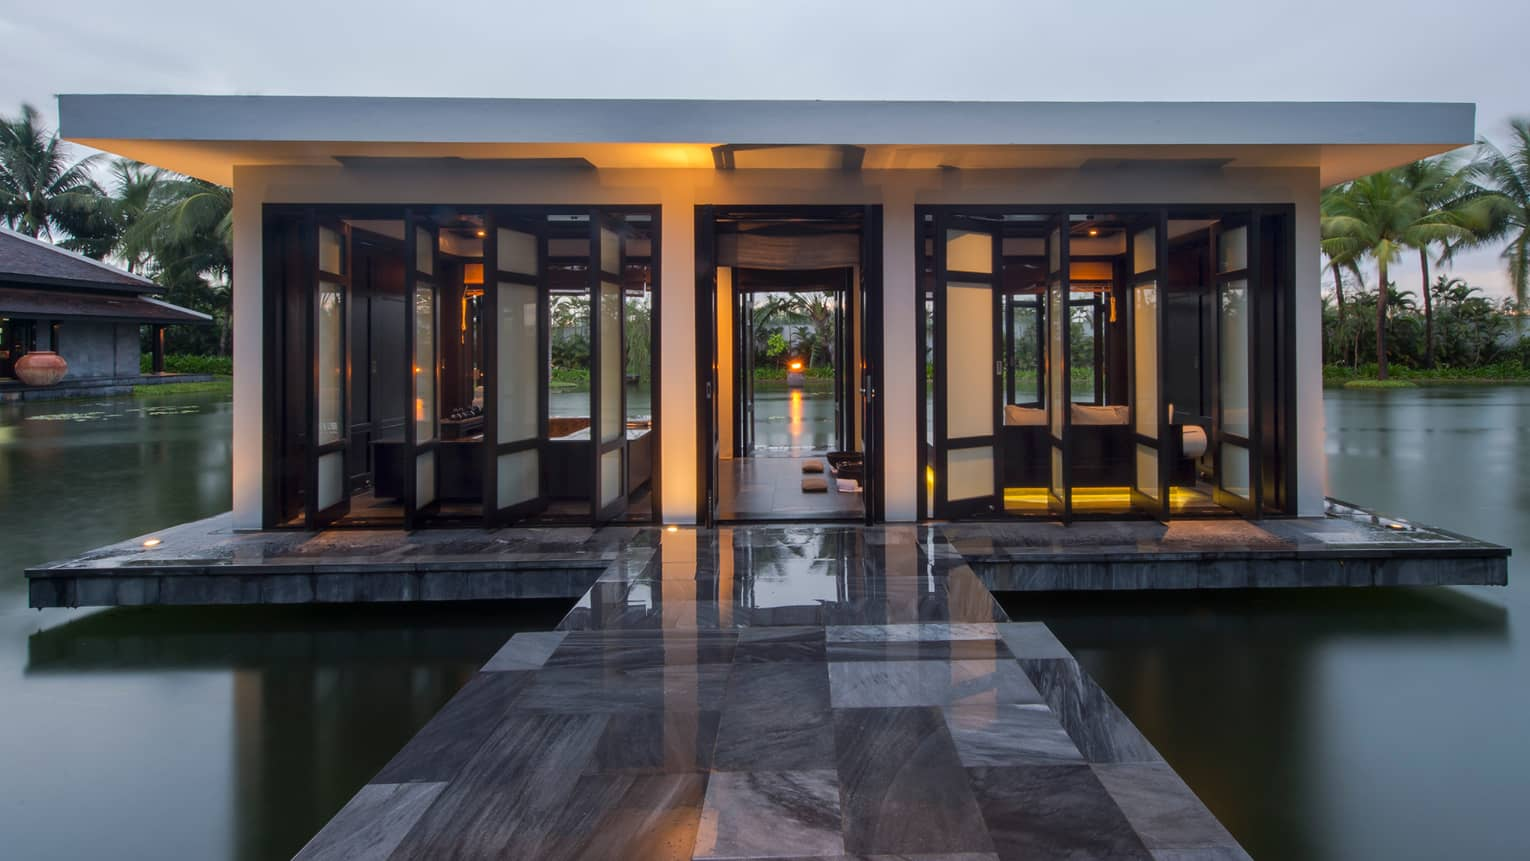 Marble tiles over lotus pond to The Heart of the Earth spa